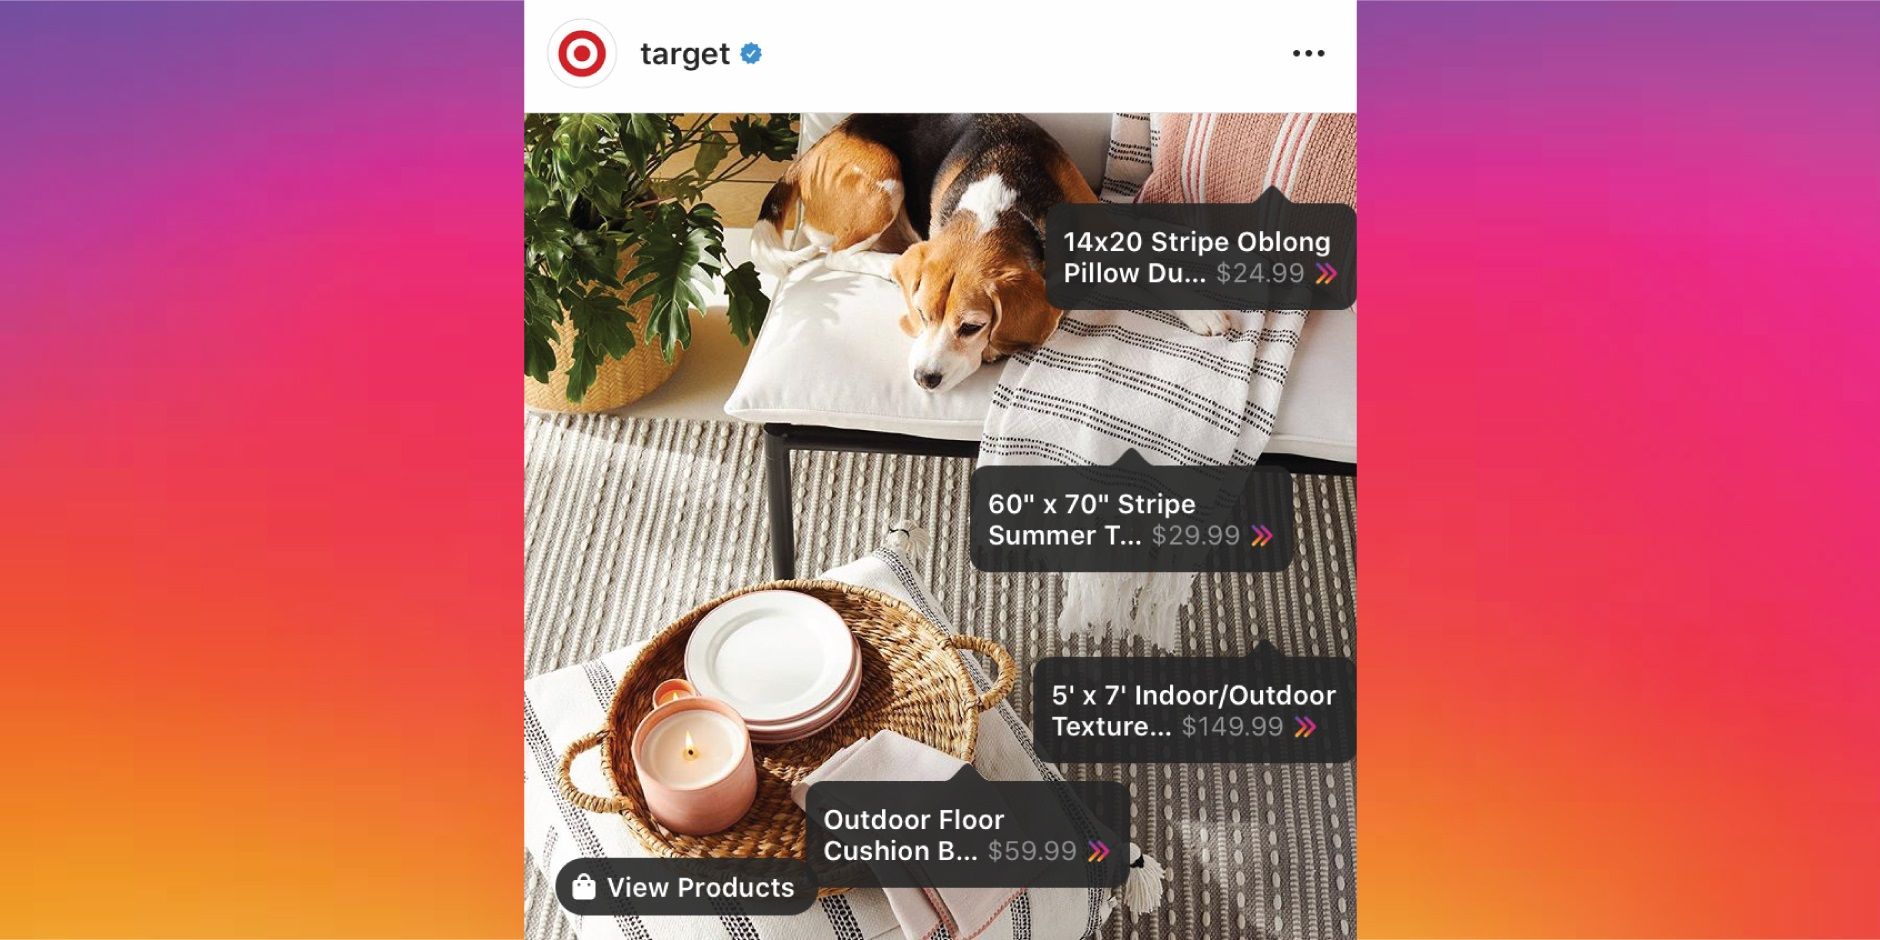 An Instagram post featuring shoppable product icons